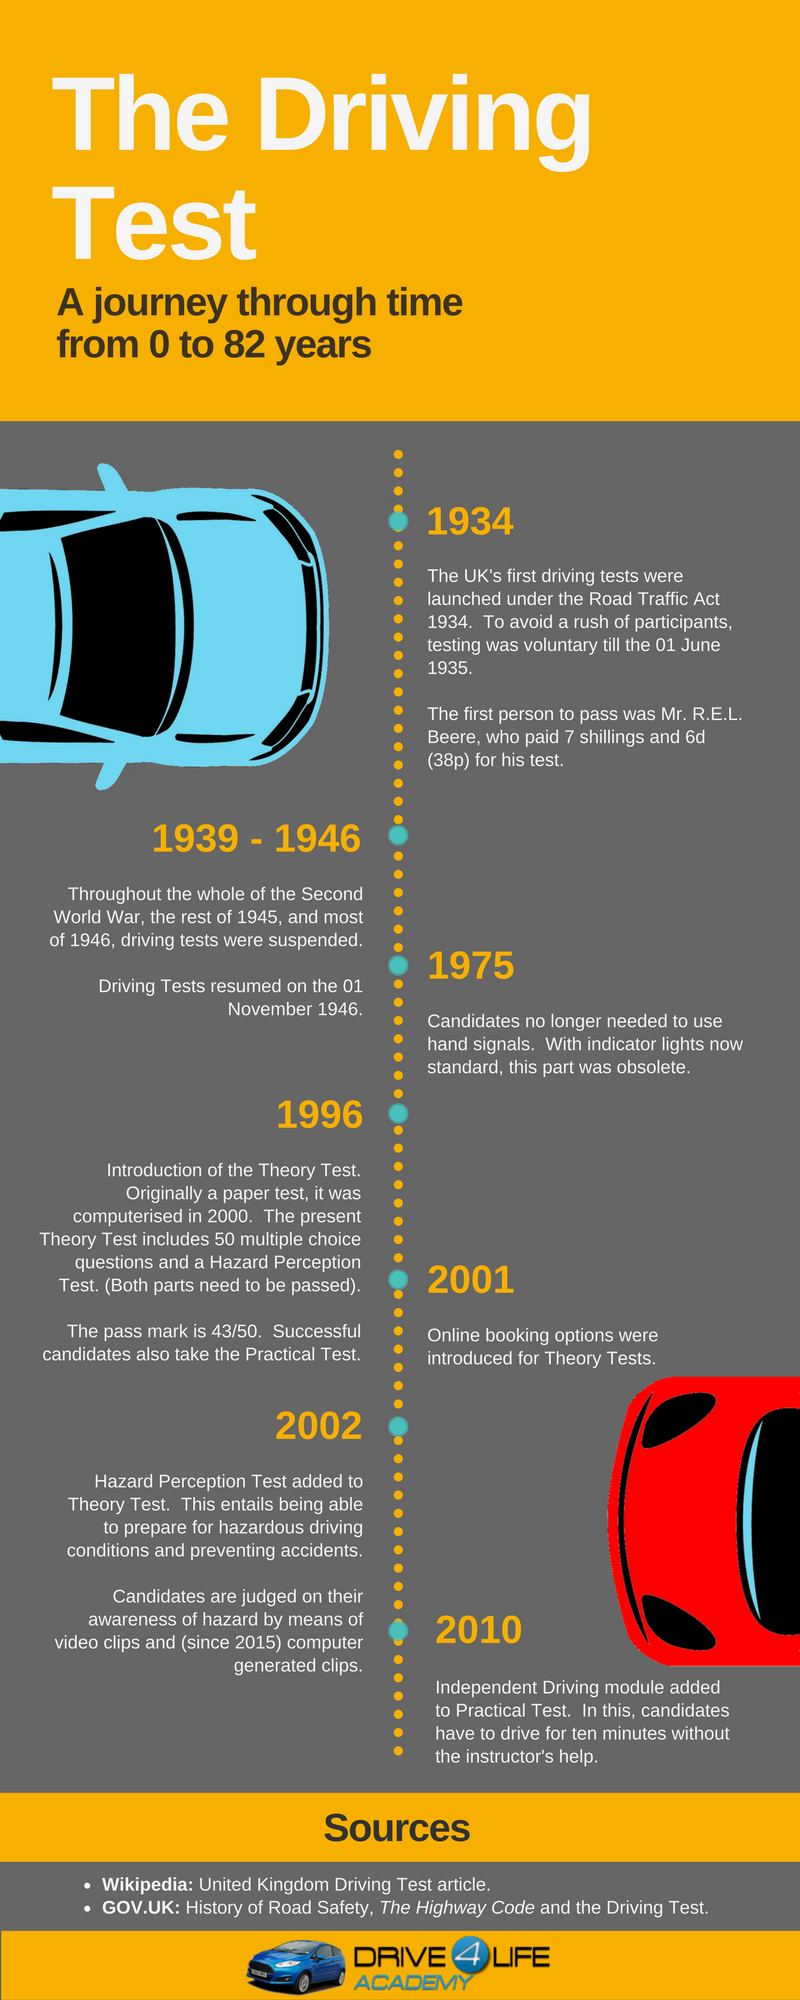 The Driving Test: A journey through time from 0 to 82 years.